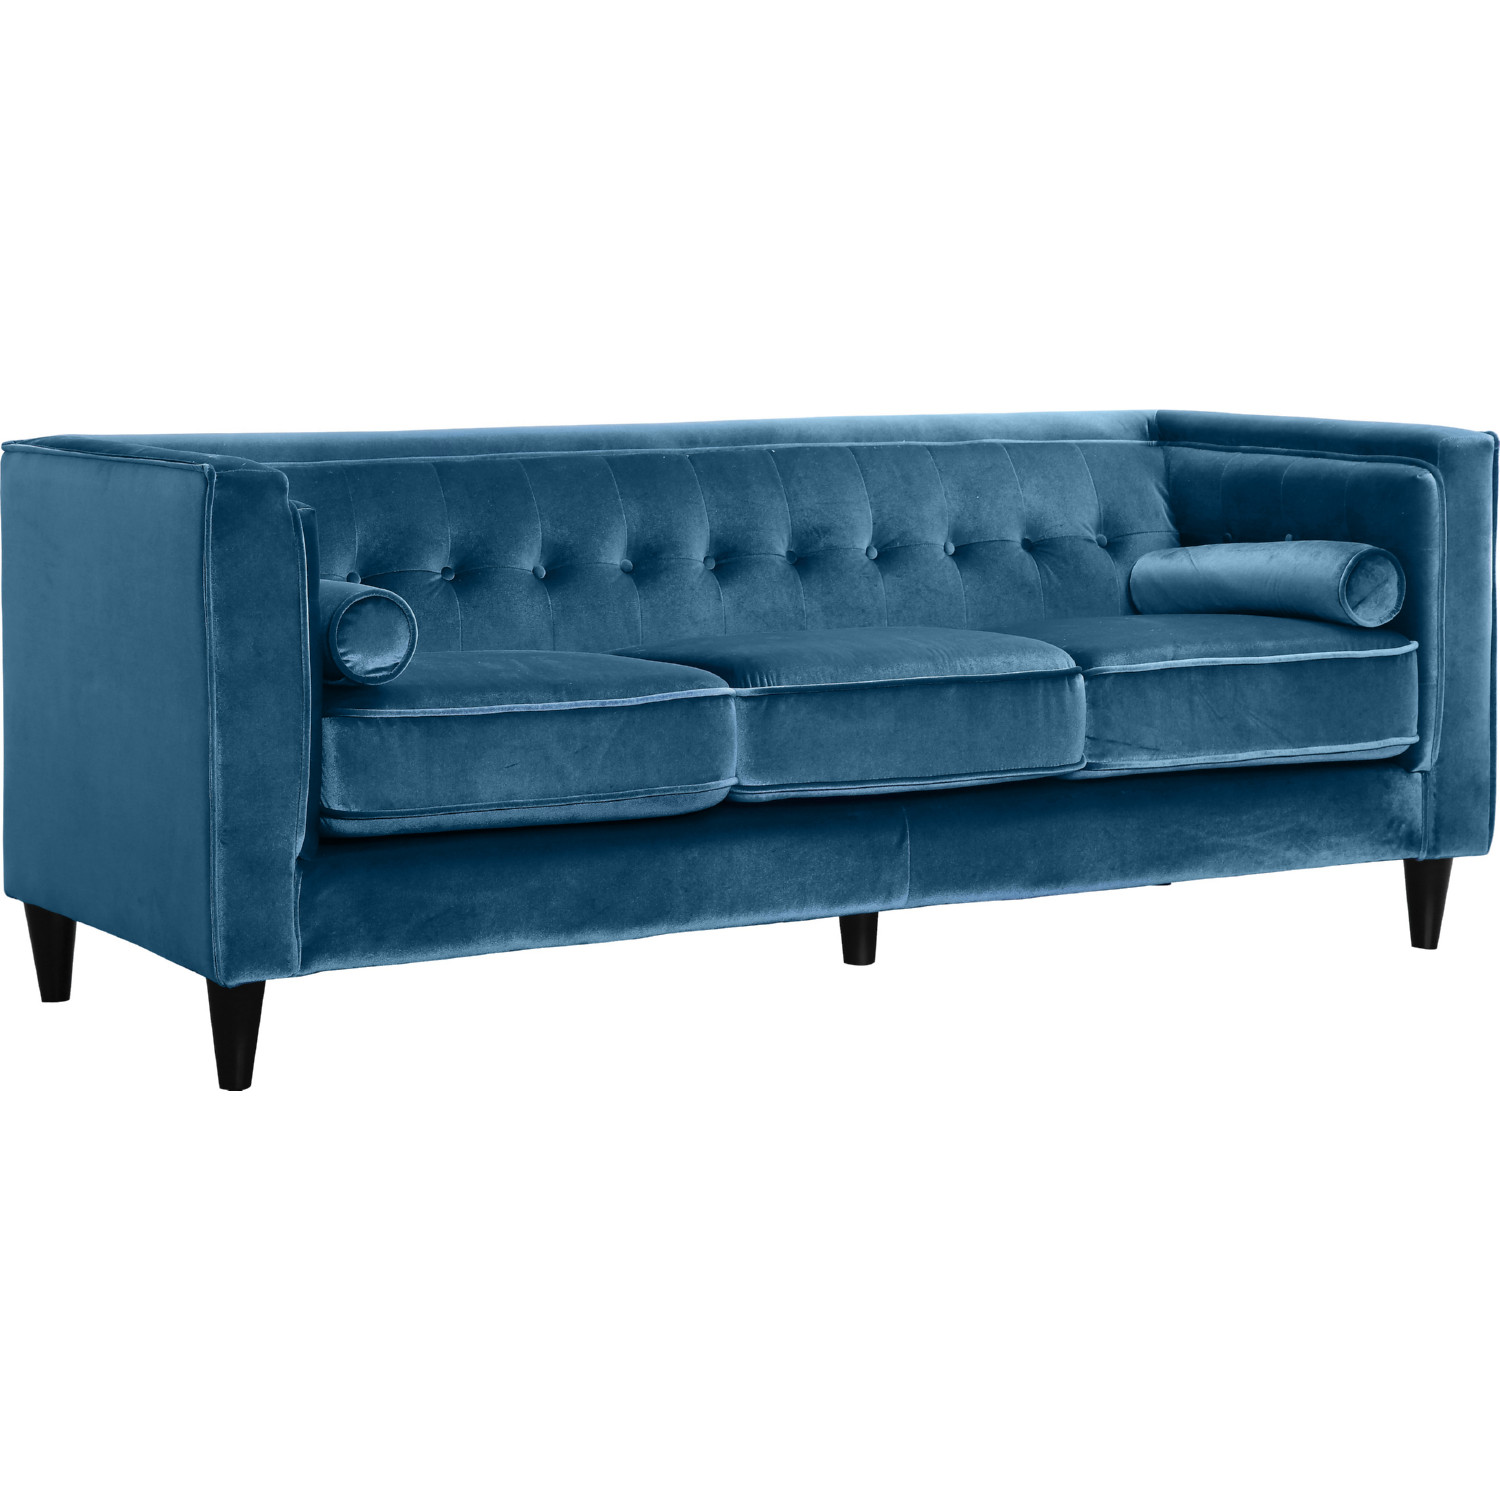 Surprising Taylor Light Blue Velvet Sofa W Tufted Back Bolster Pillows By Meridian Furniture Ocoug Best Dining Table And Chair Ideas Images Ocougorg